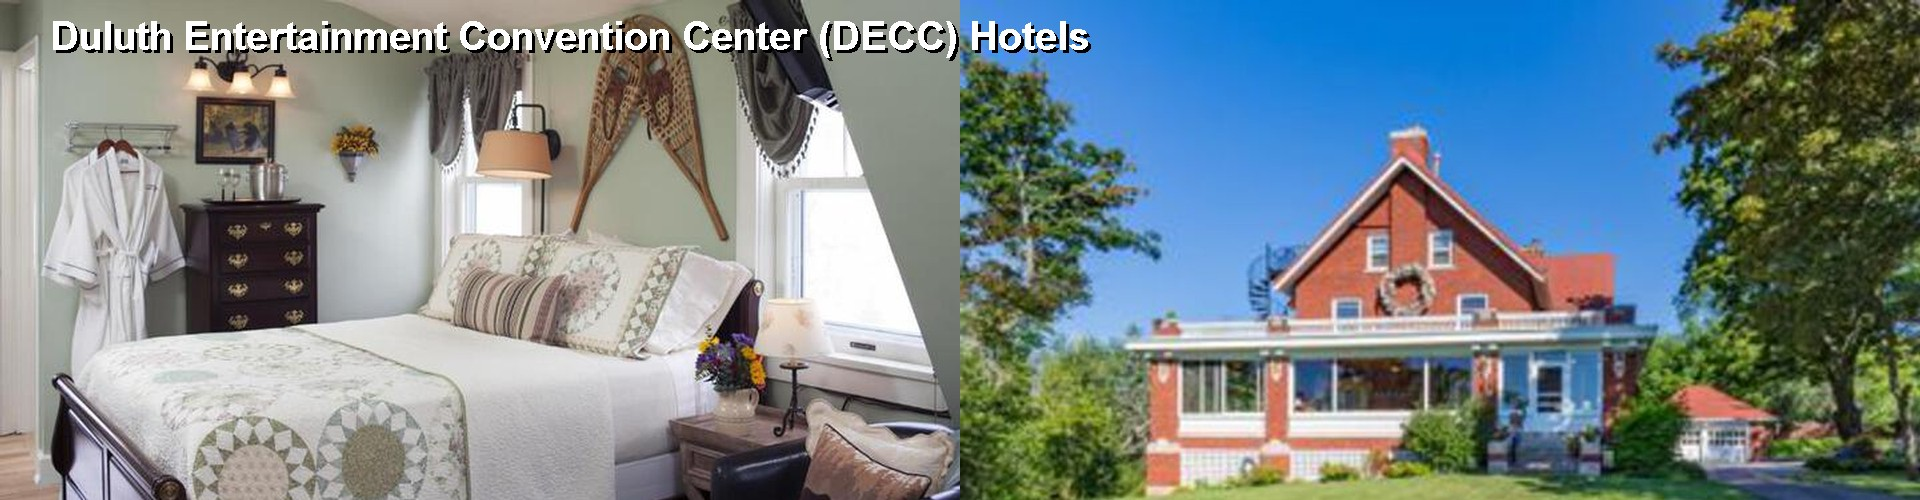 5 Best Hotels near Duluth Entertainment Convention Center (DECC)